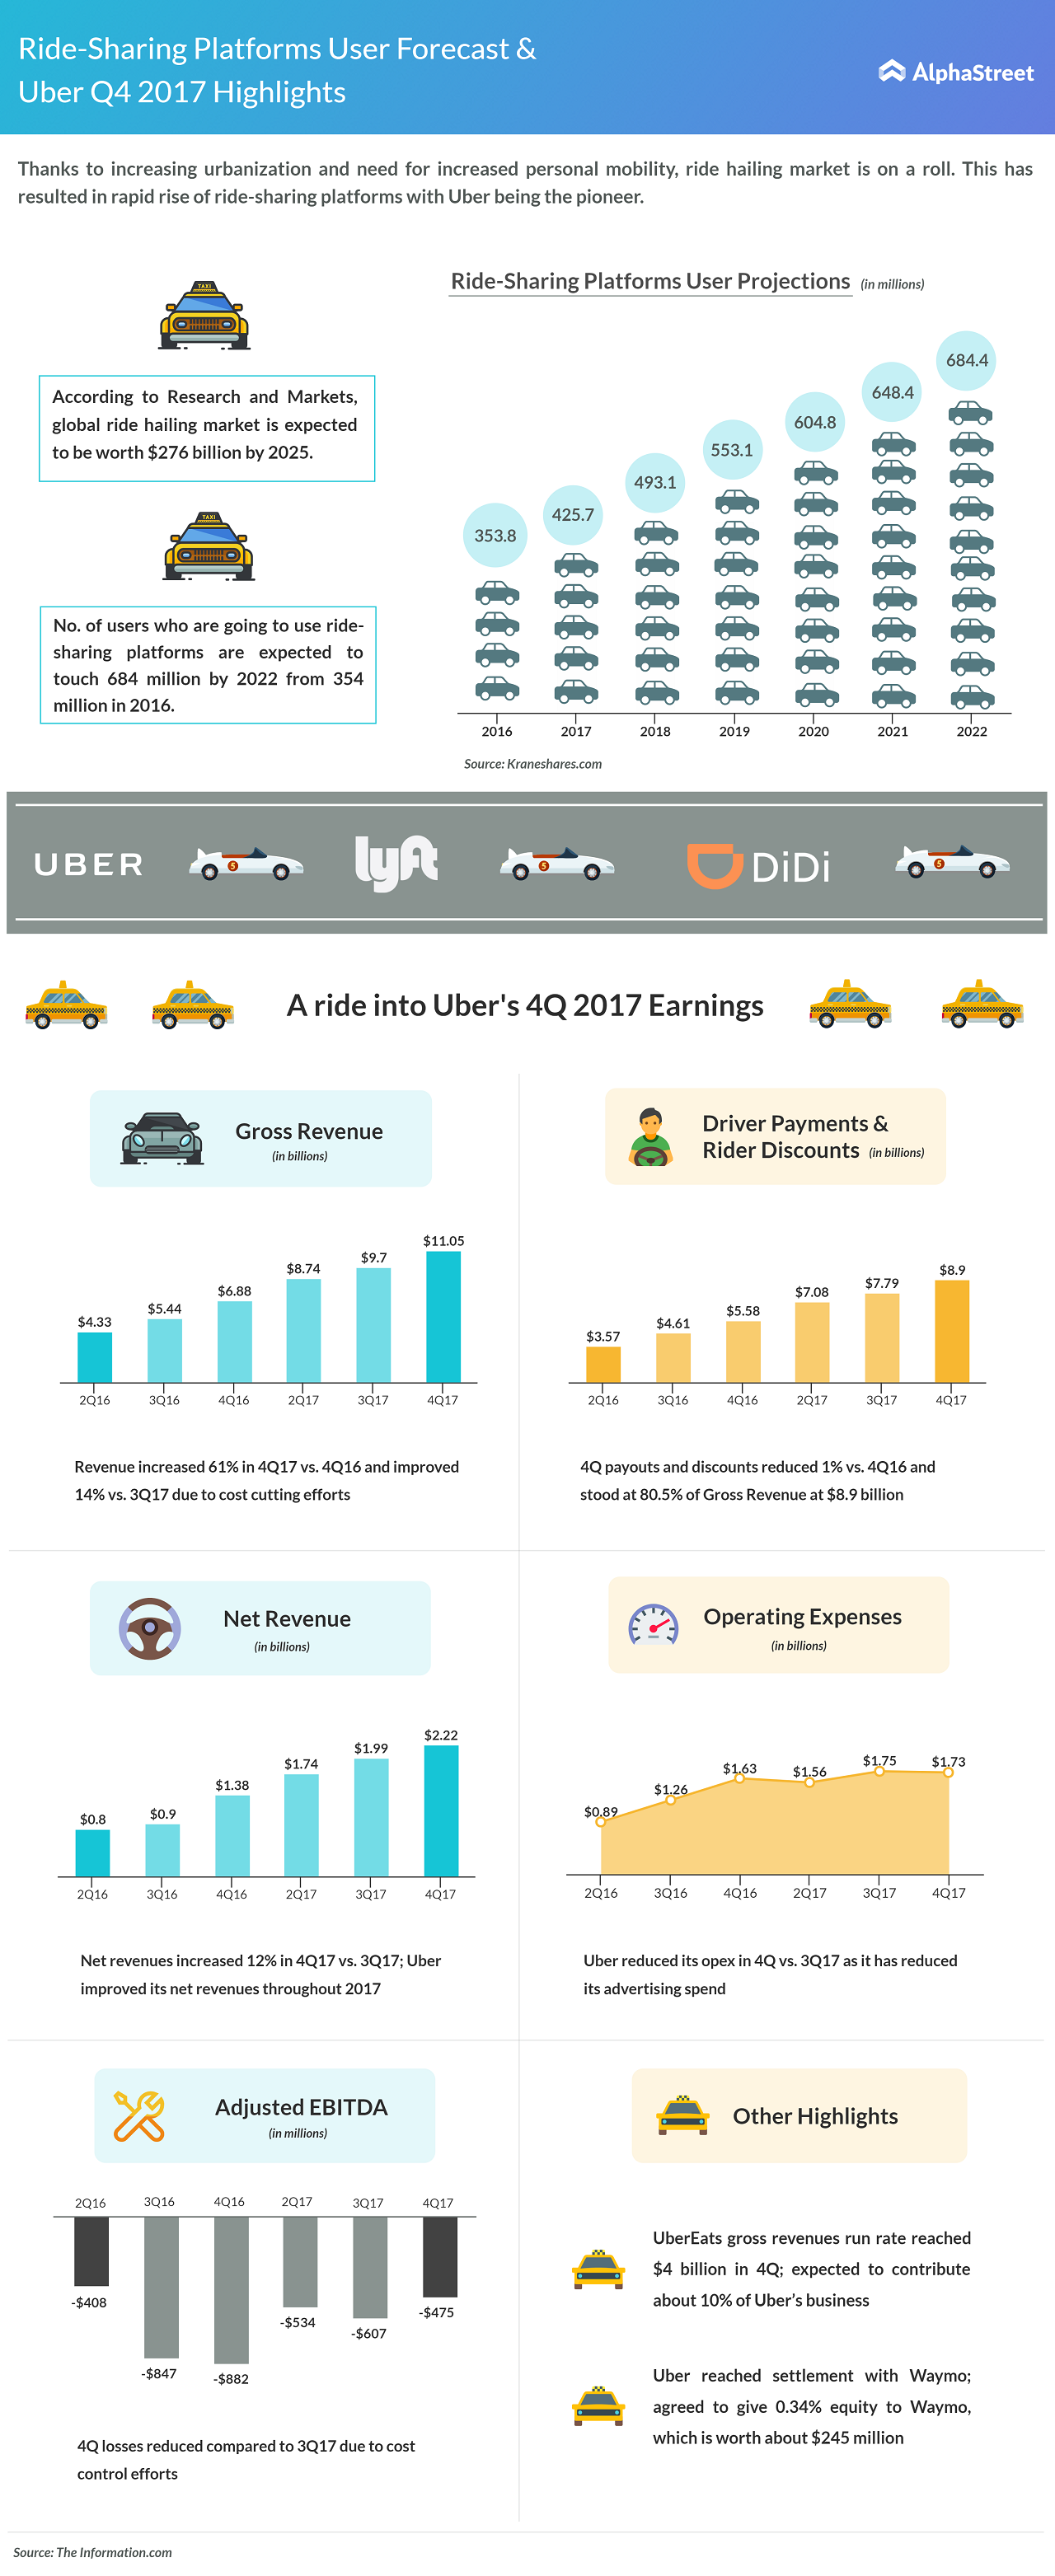 Ride sharing users expected to reach 684.4 million by 2022